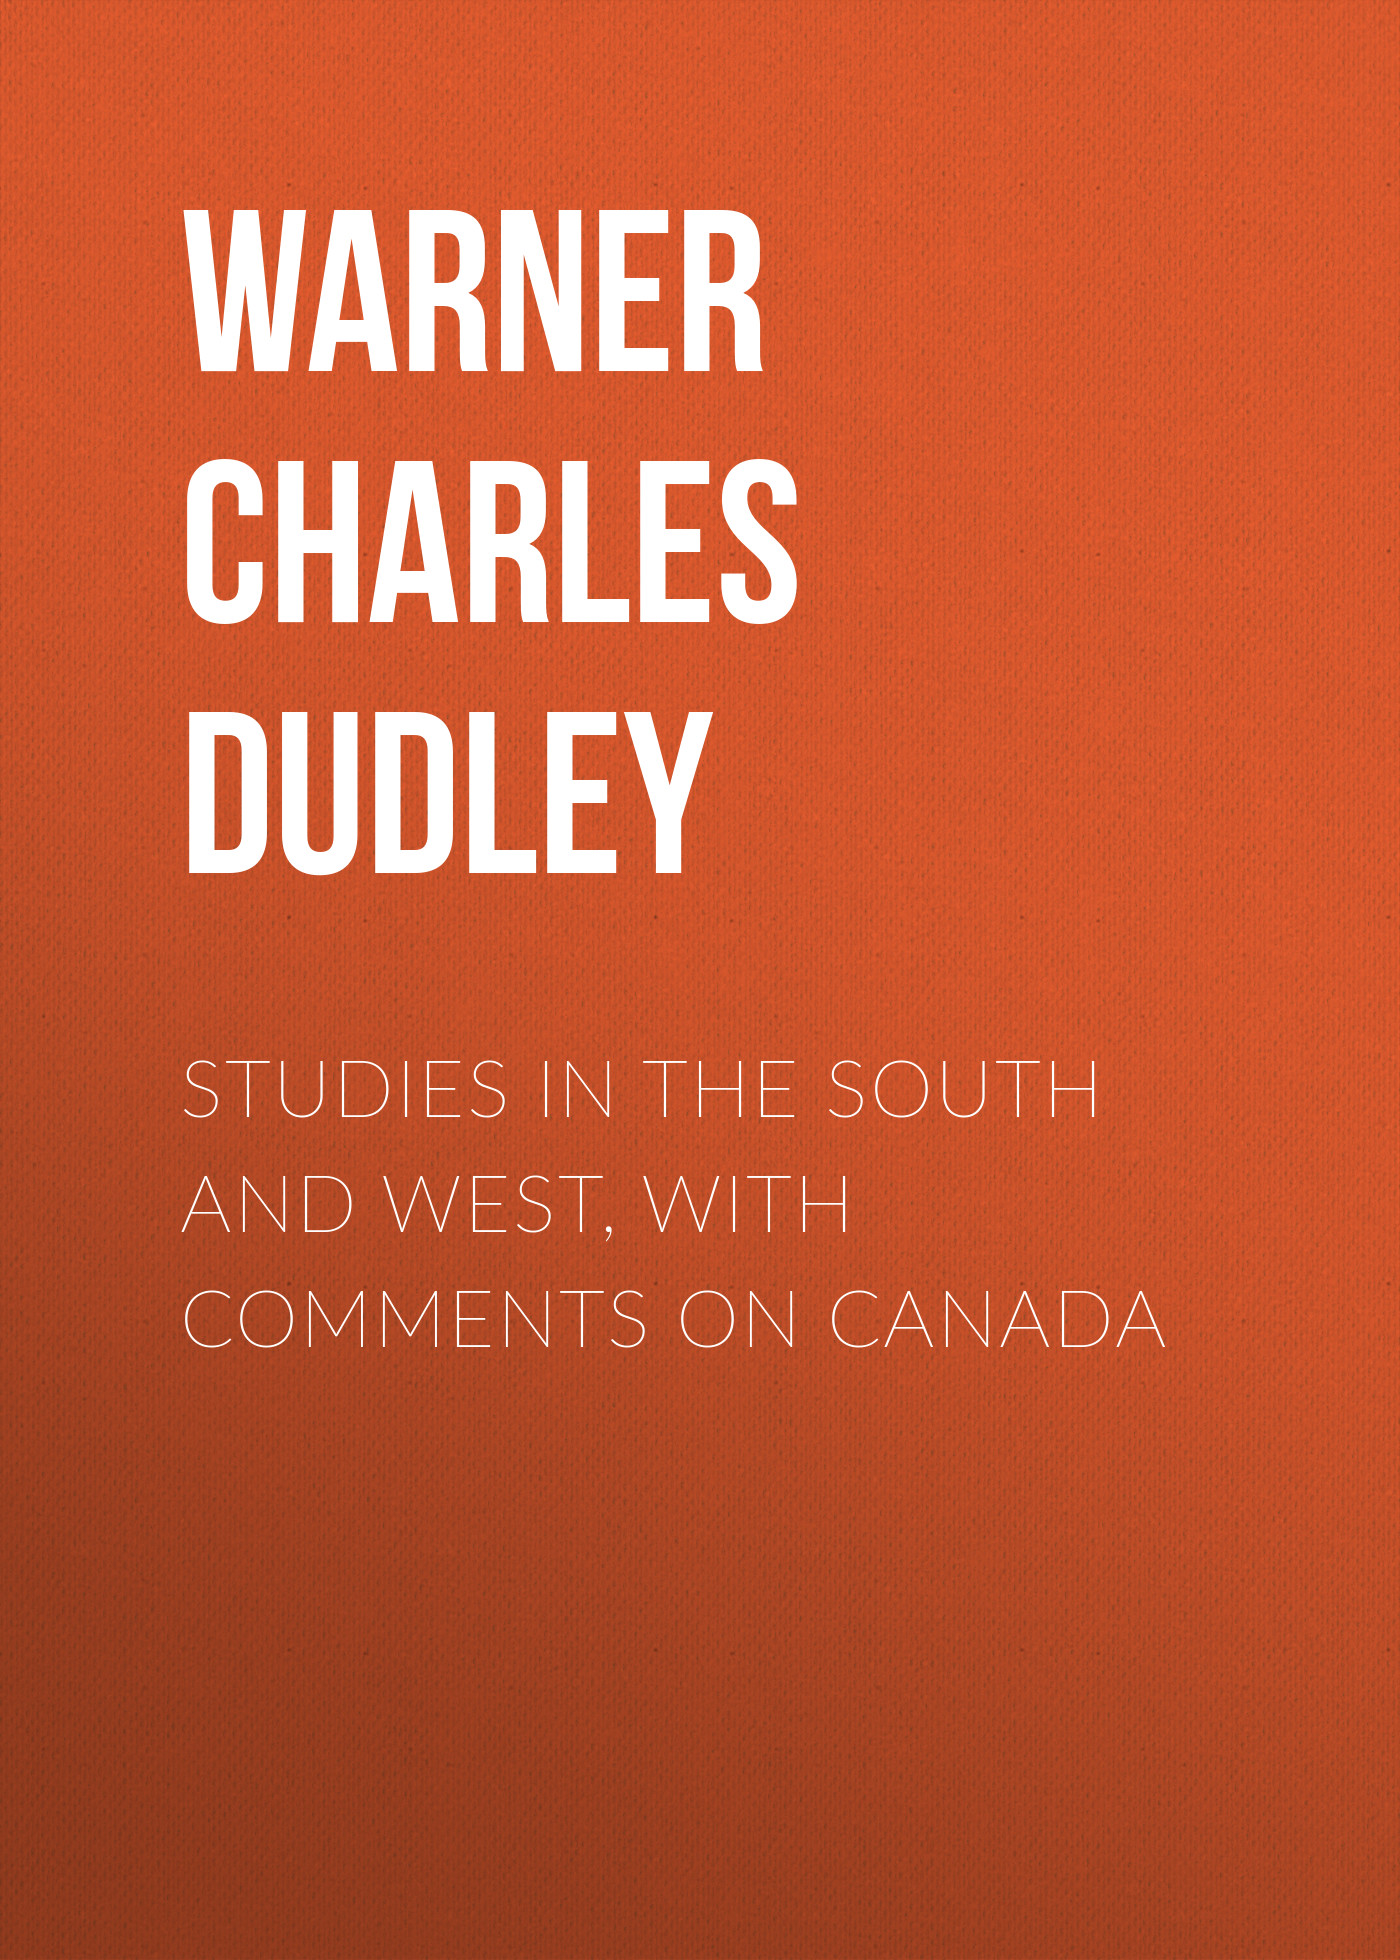 Warner Charles Dudley Studies in The South and West, With Comments on Canada